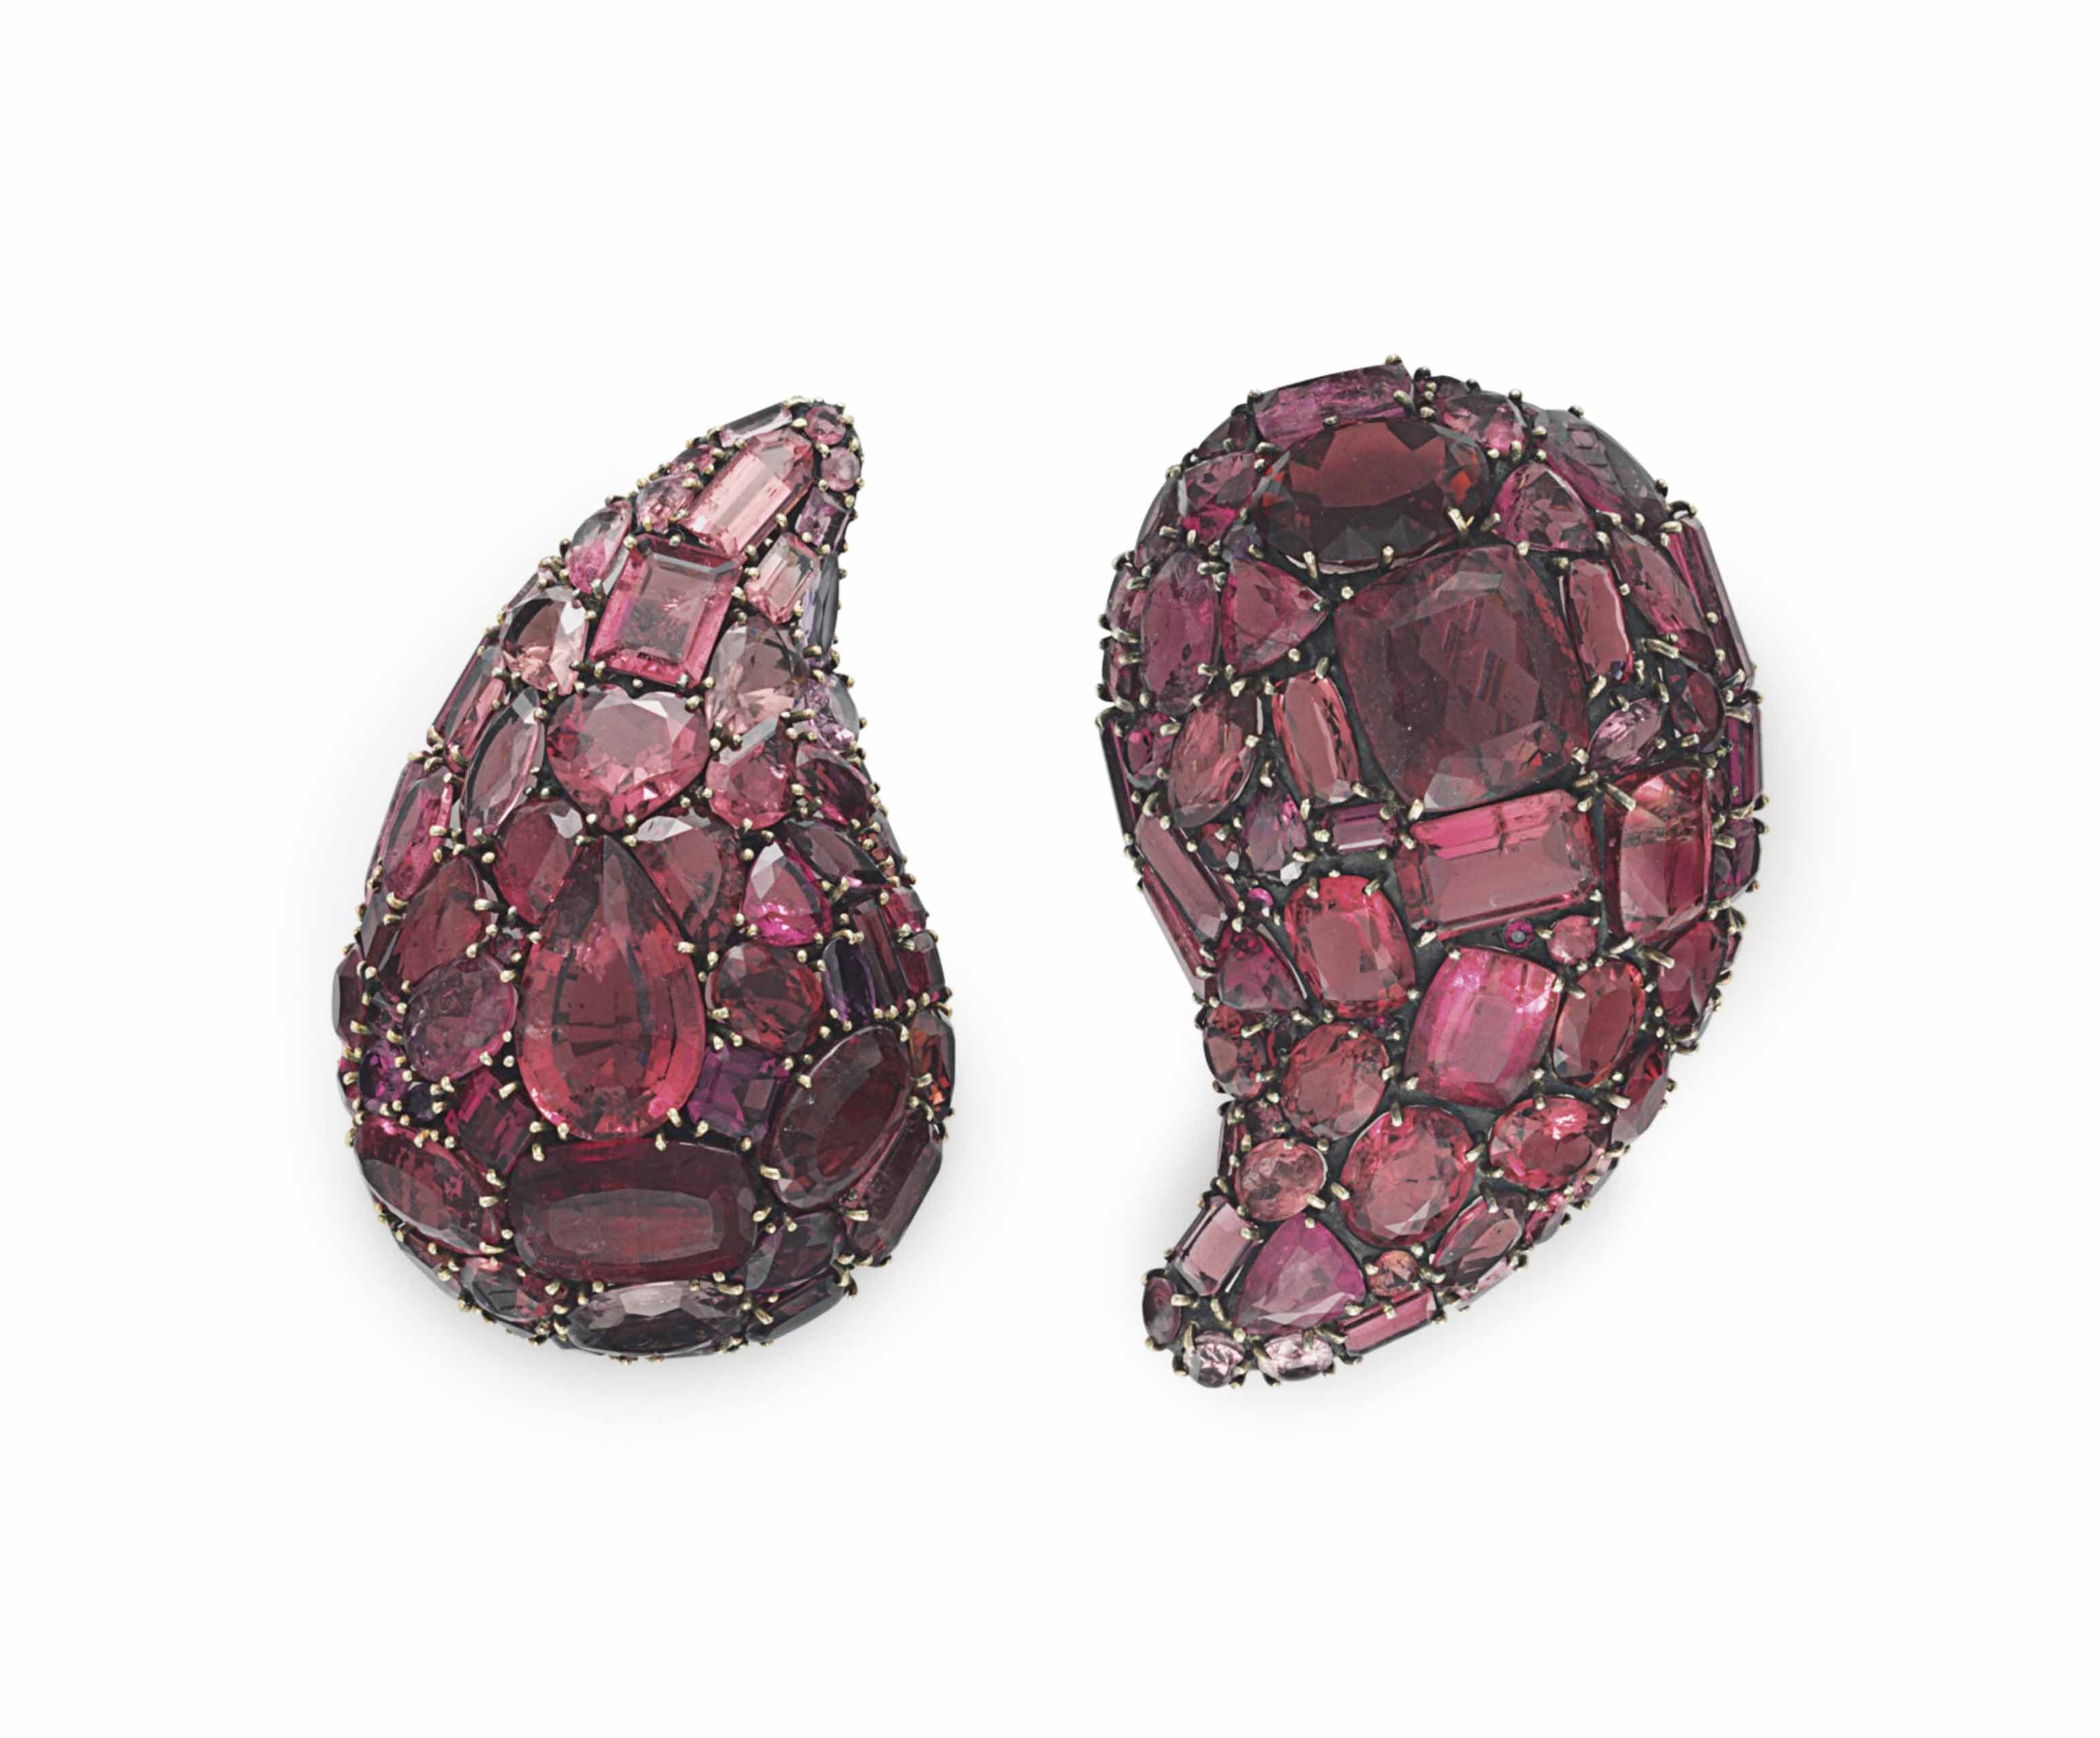 TWO PINK AND PURPLE TOURMALINE BROOCHES, BY MARILYN COOPERMAN